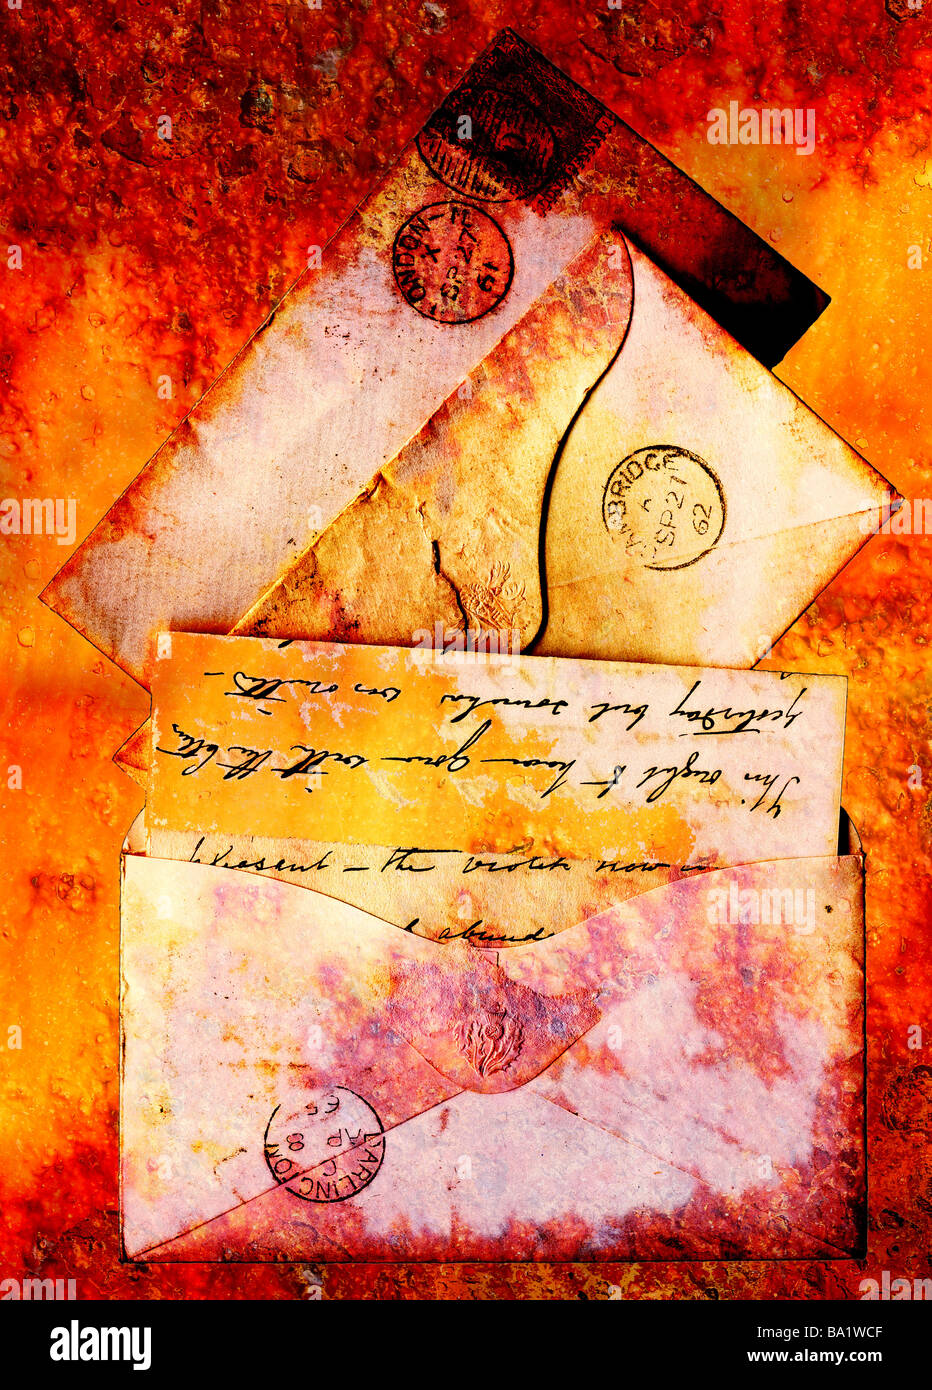 Victorian stationery from 1860s represented in a grunge style - Stock Image